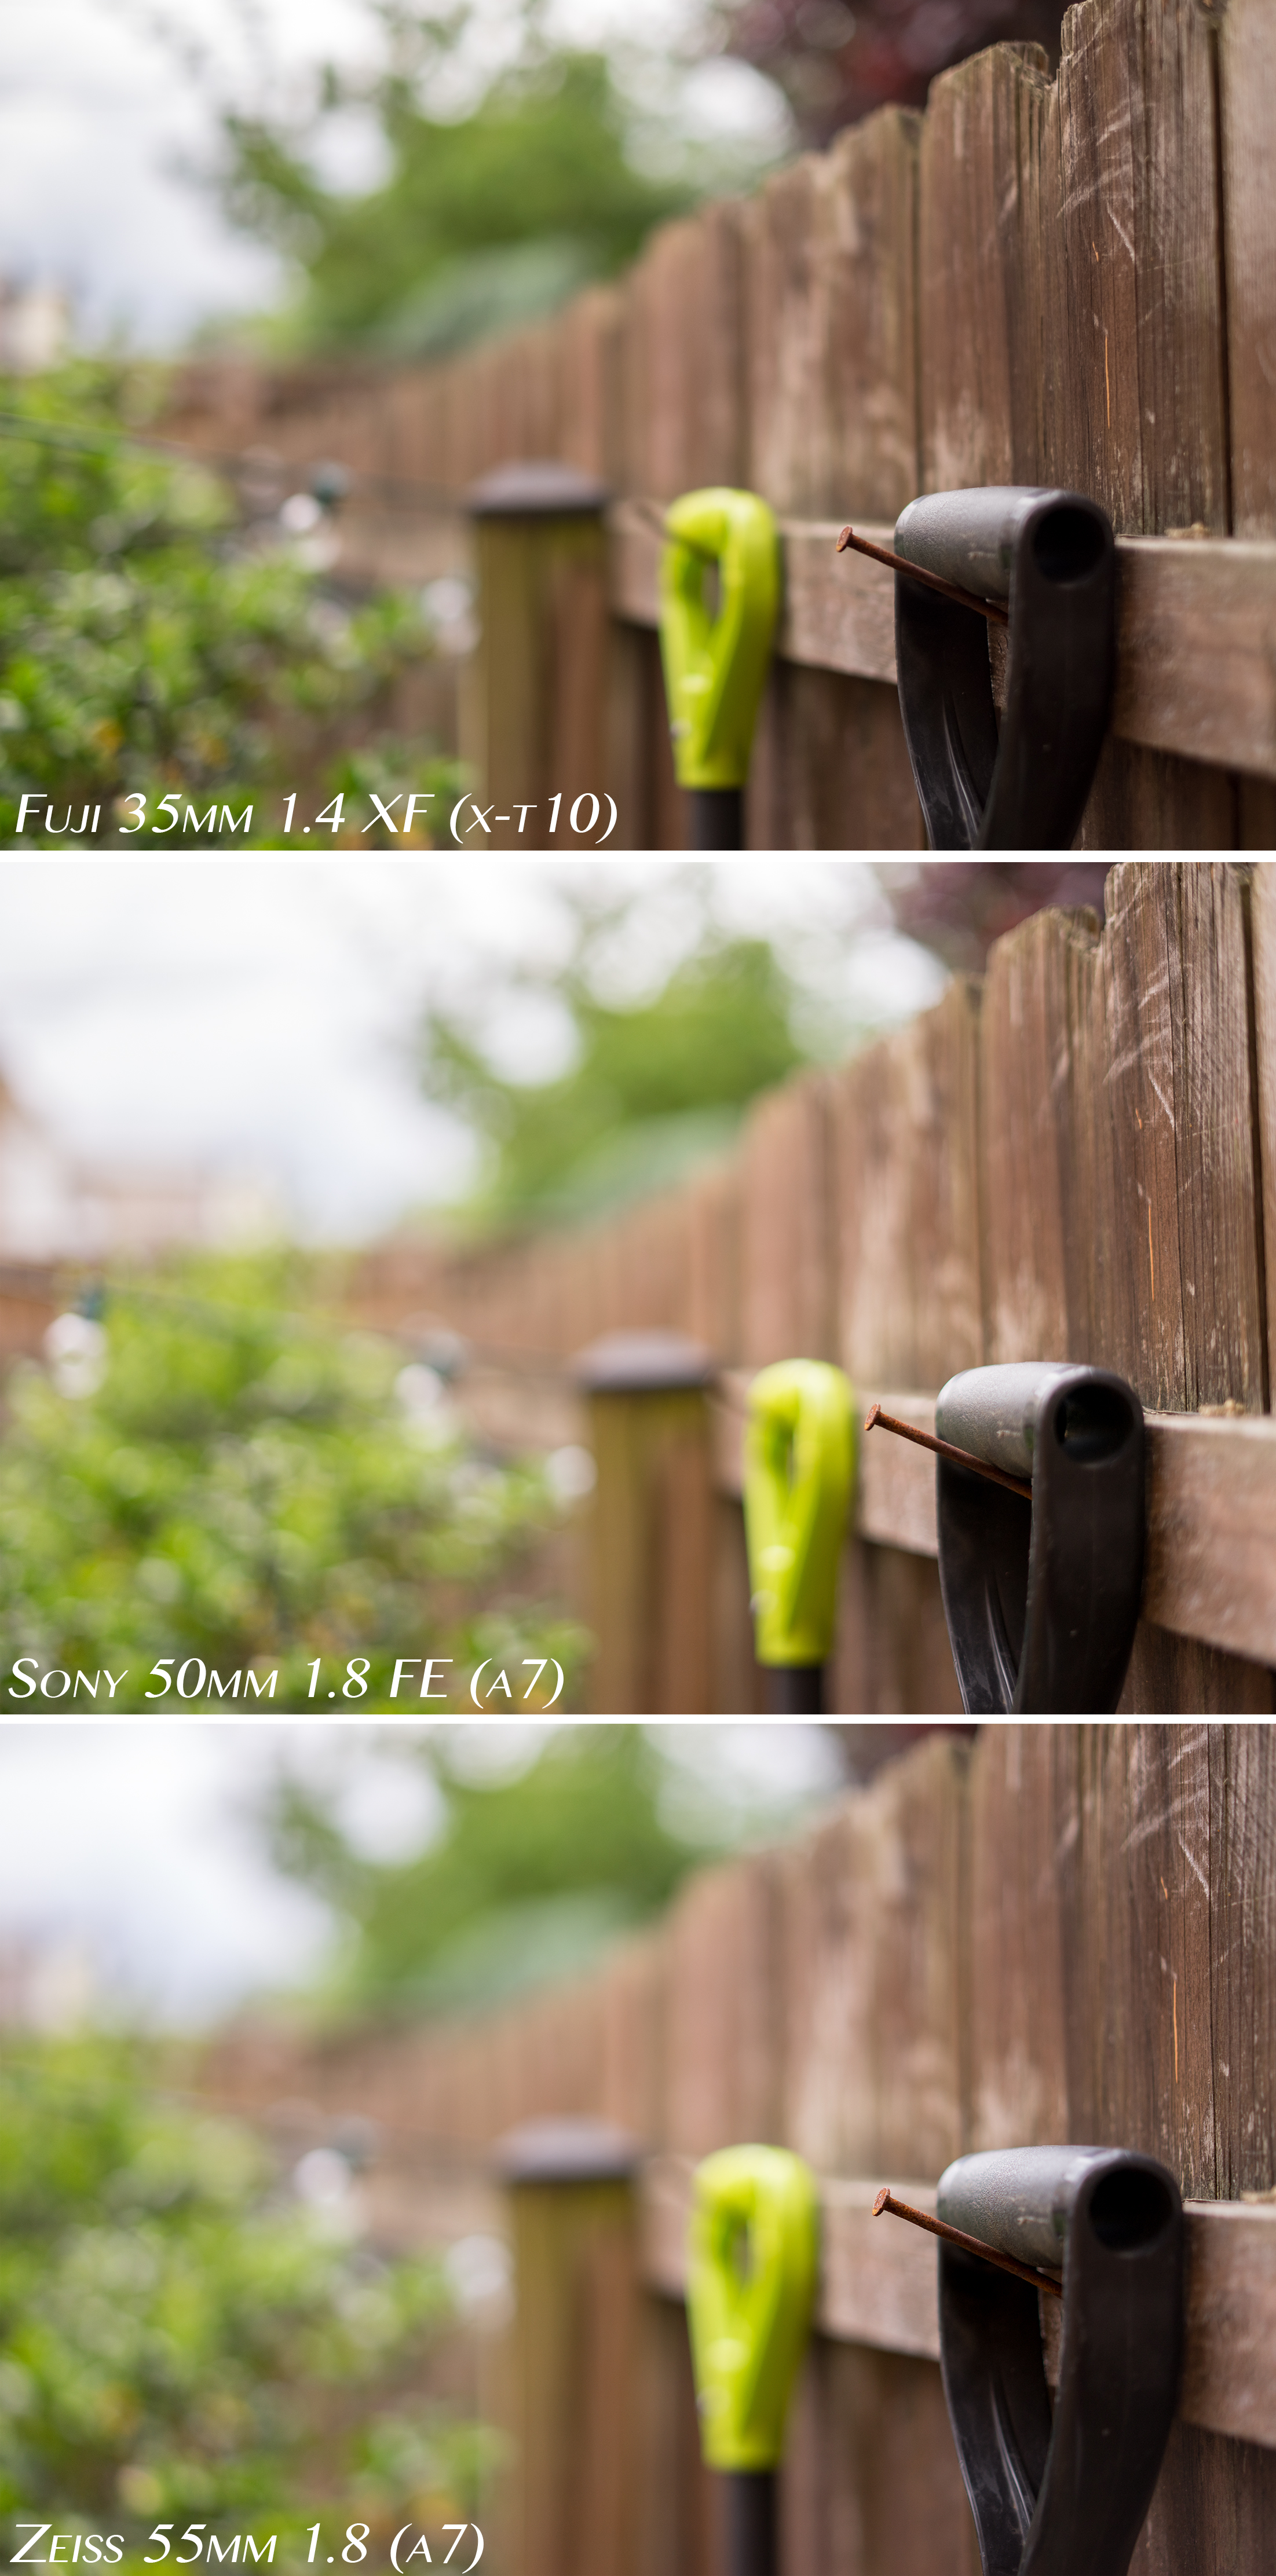 Sony 50mm F 18 Fe Vs Zeiss 55mm Photos By Johnathan Comer Sel55f18z F18 Za Sonnar T Sel 55 Full Size Fuji